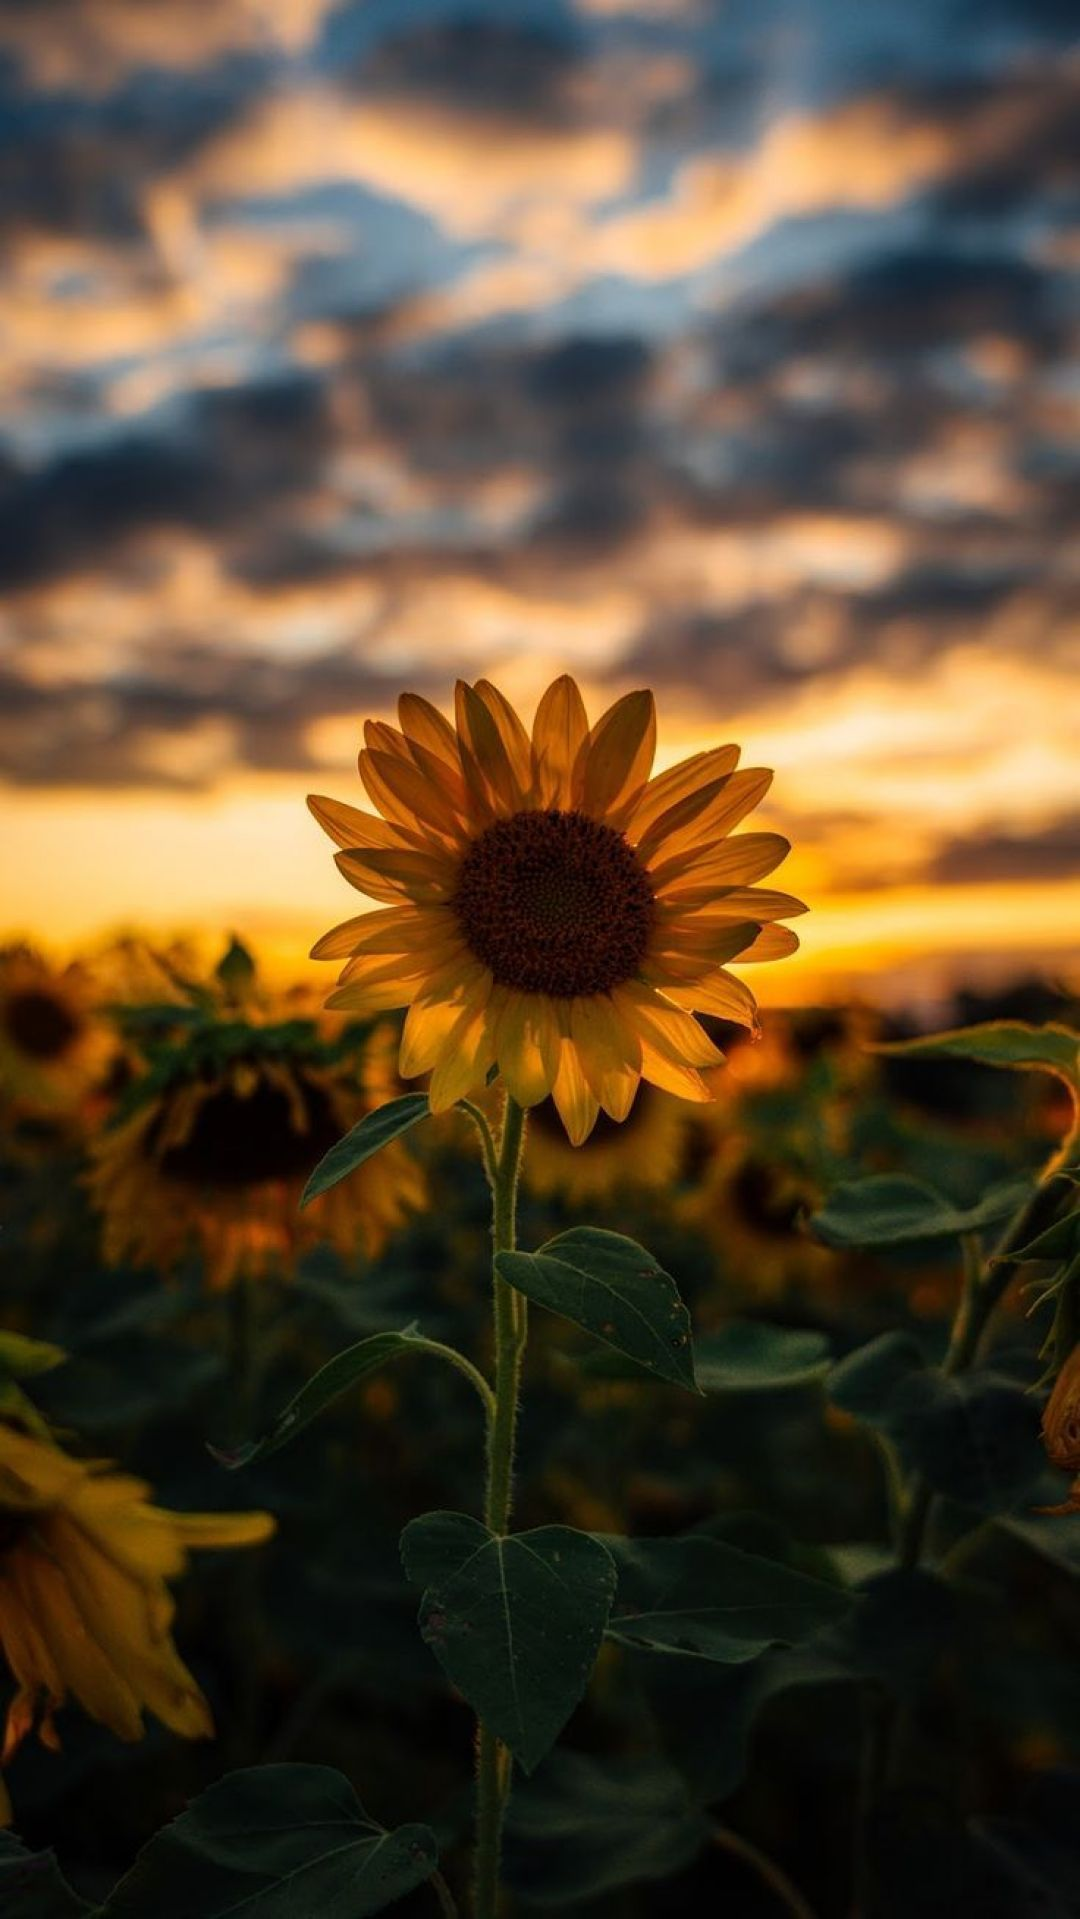 These hd iphone wallpapers are free to download for your iphone(include iphone 12). Aesthetic Hd Iphone Wallpapers Flowers in 2020 | Sunflower ...